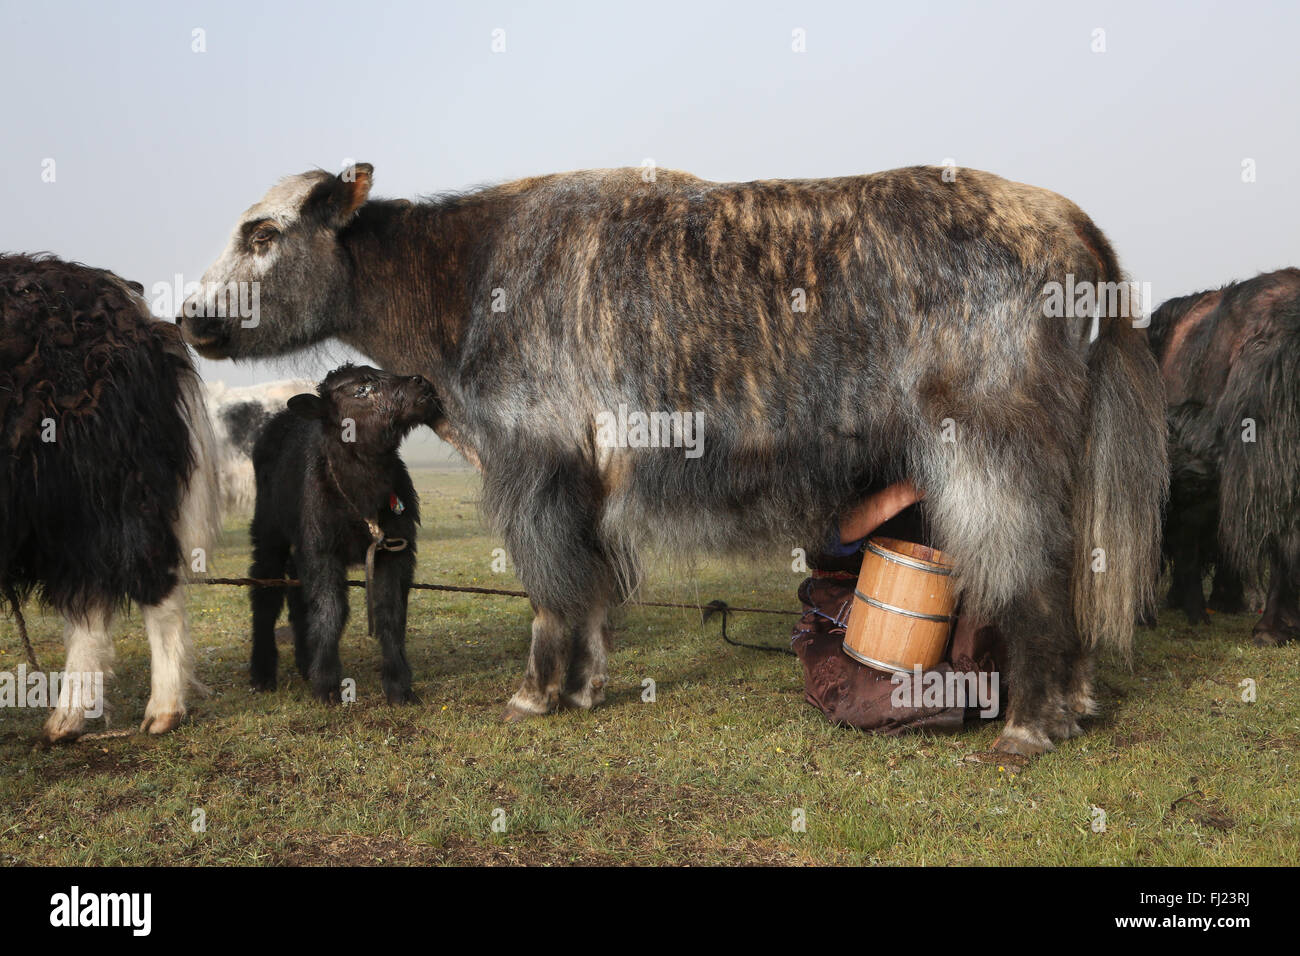 Milking Yaks at nomads camp in Mongolia Stock Photo